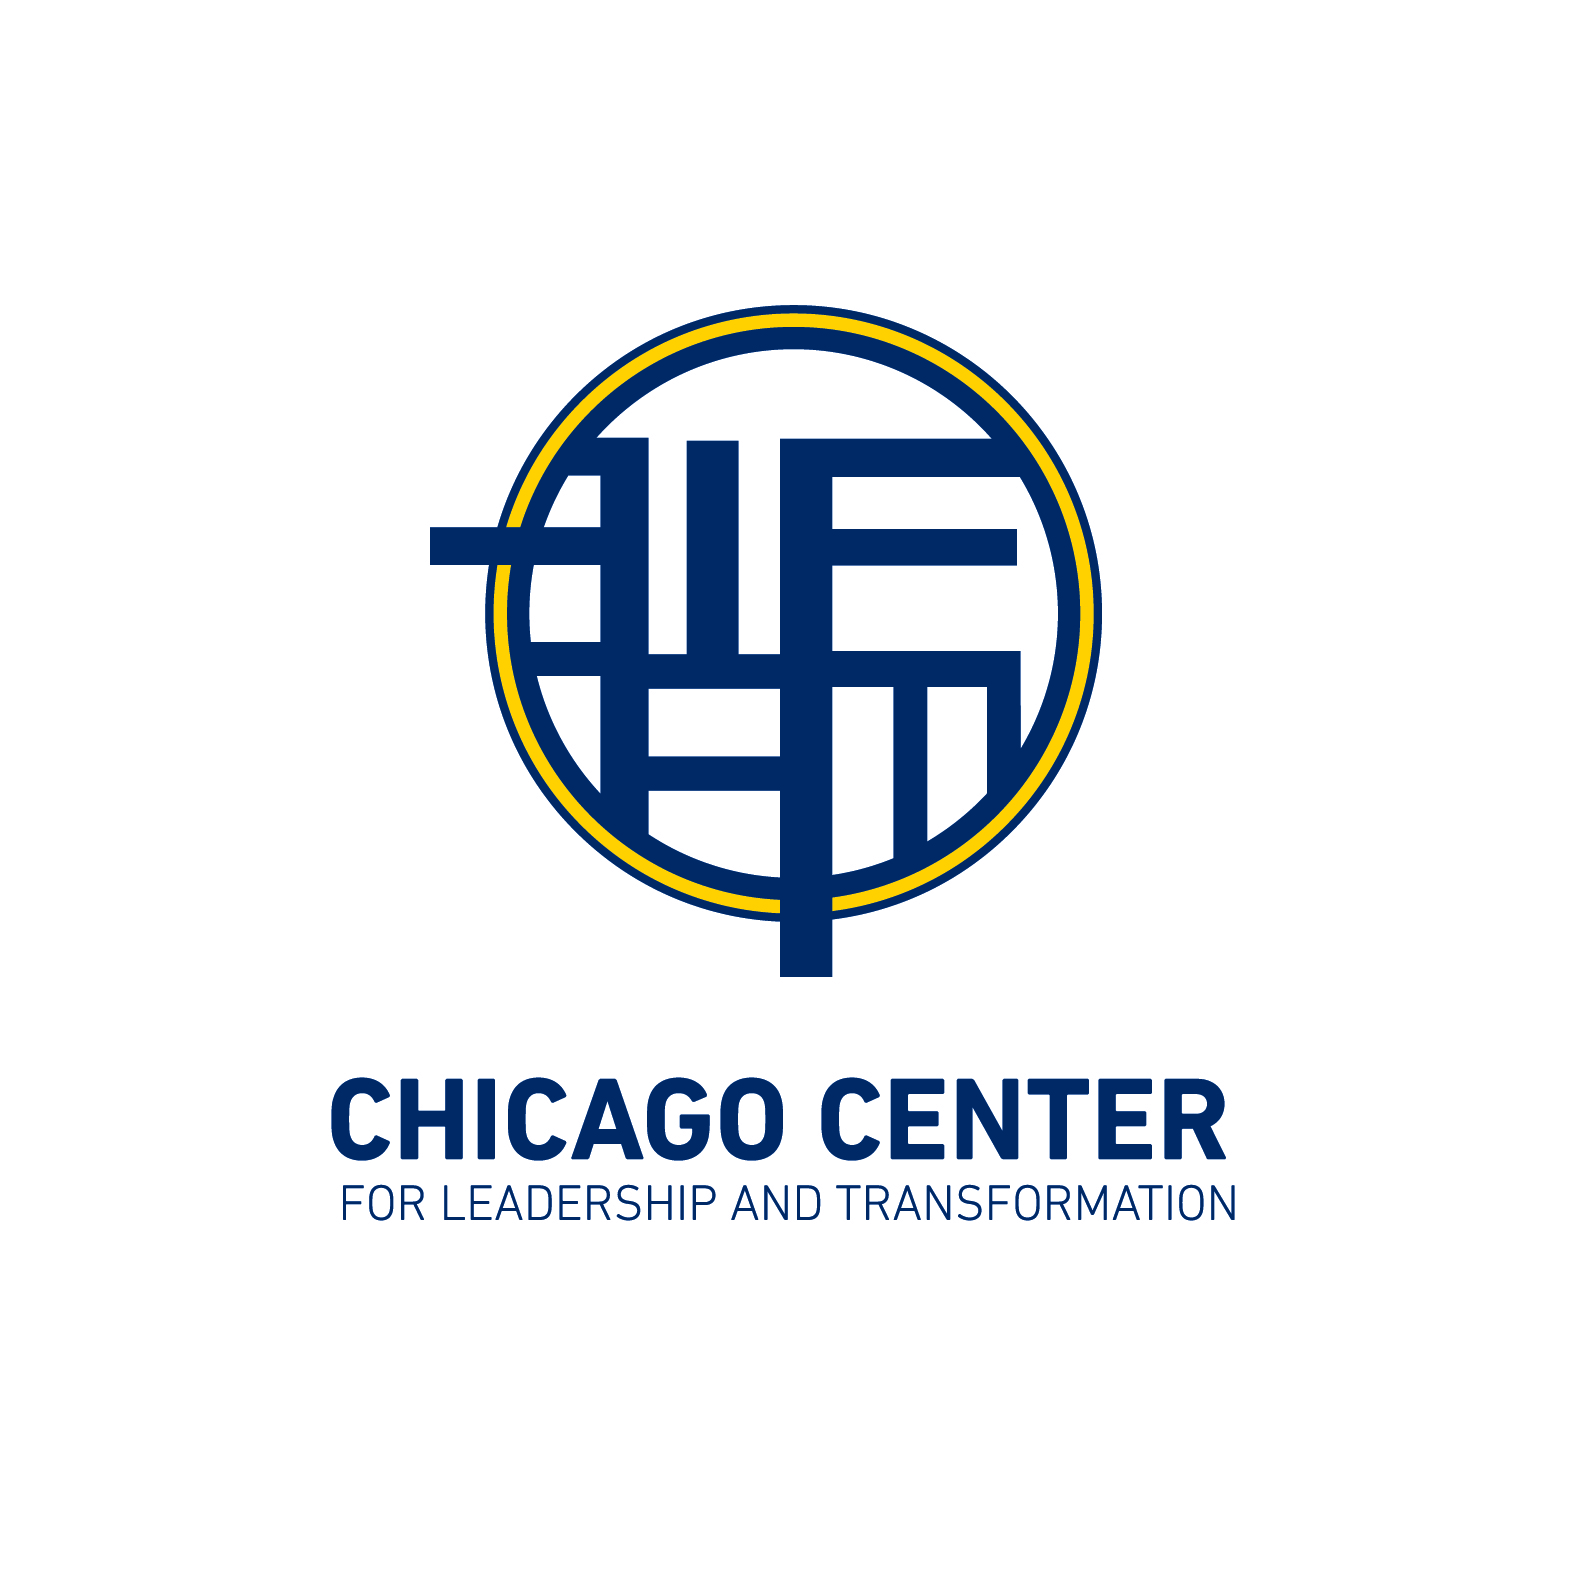 Chicago Center for Leadership and Transformation